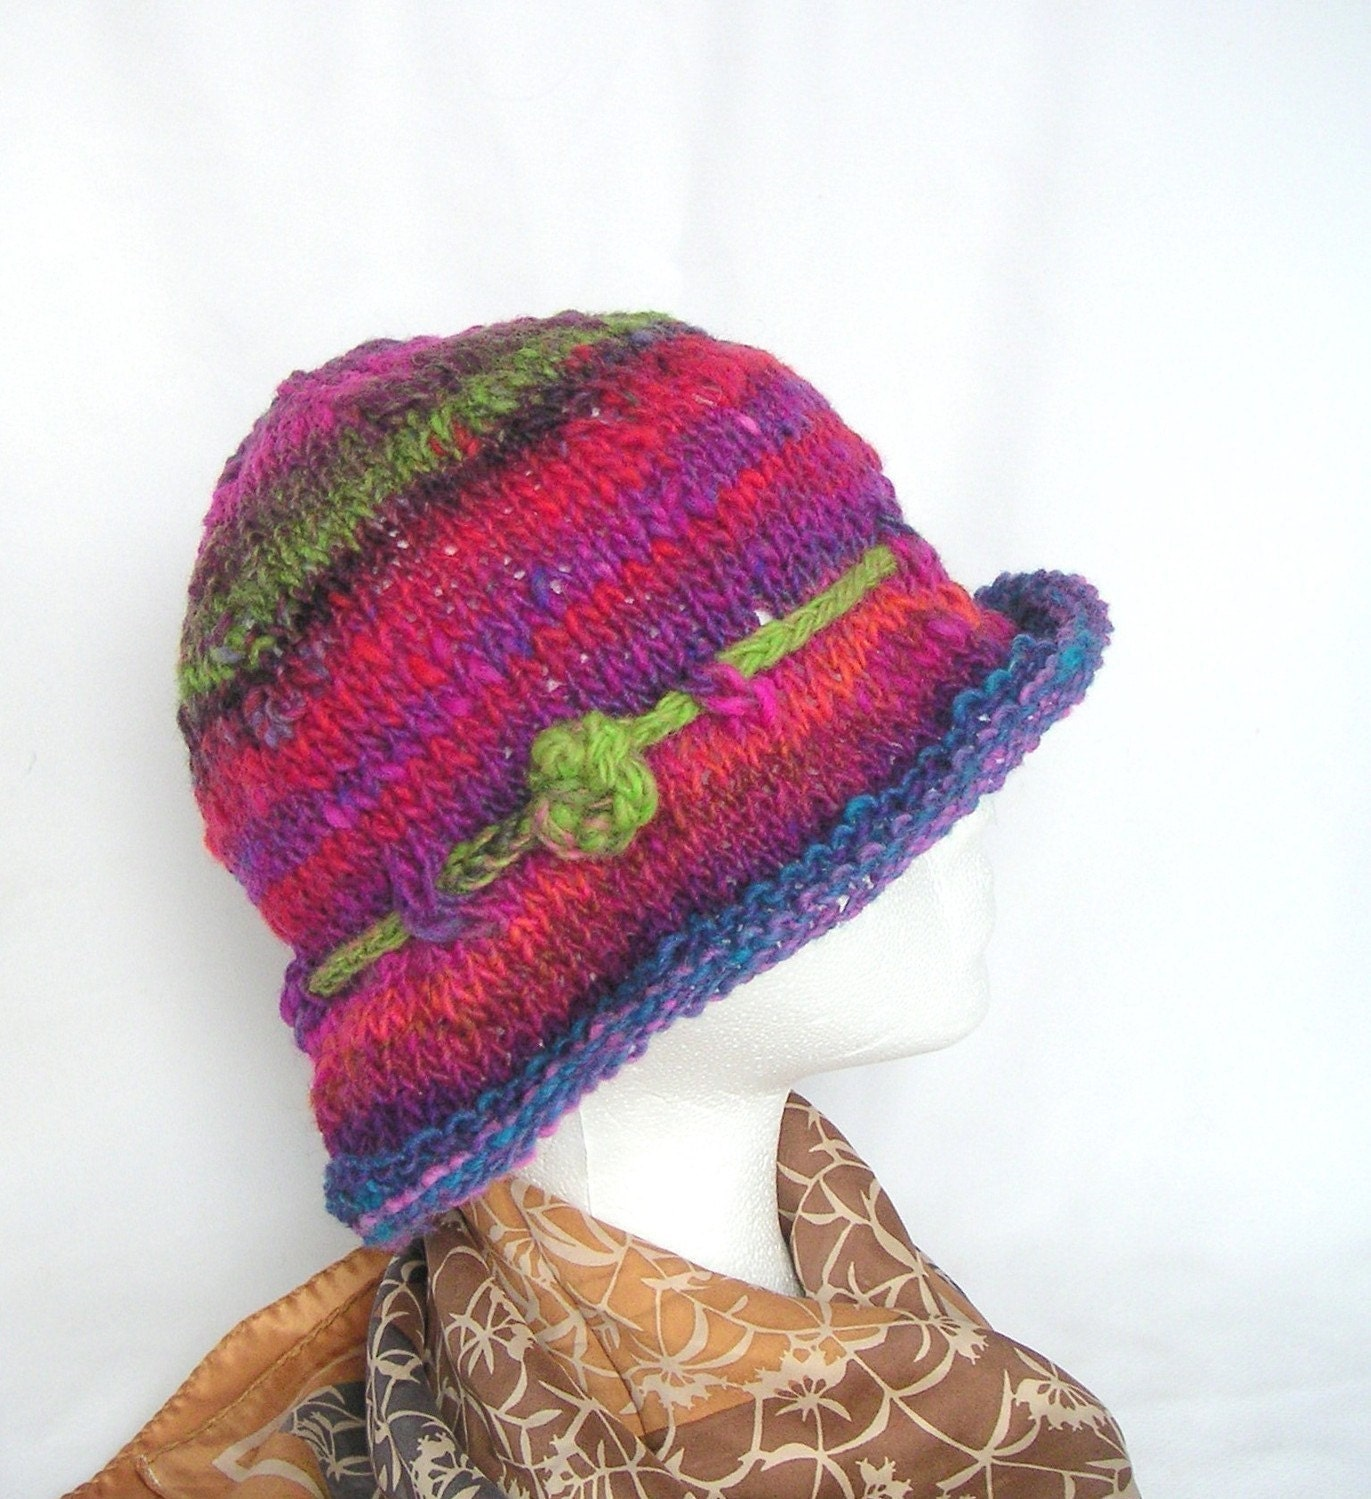 Knitting Instructions For Beginners Pdf : Simple knit hat knitting pattern easy by